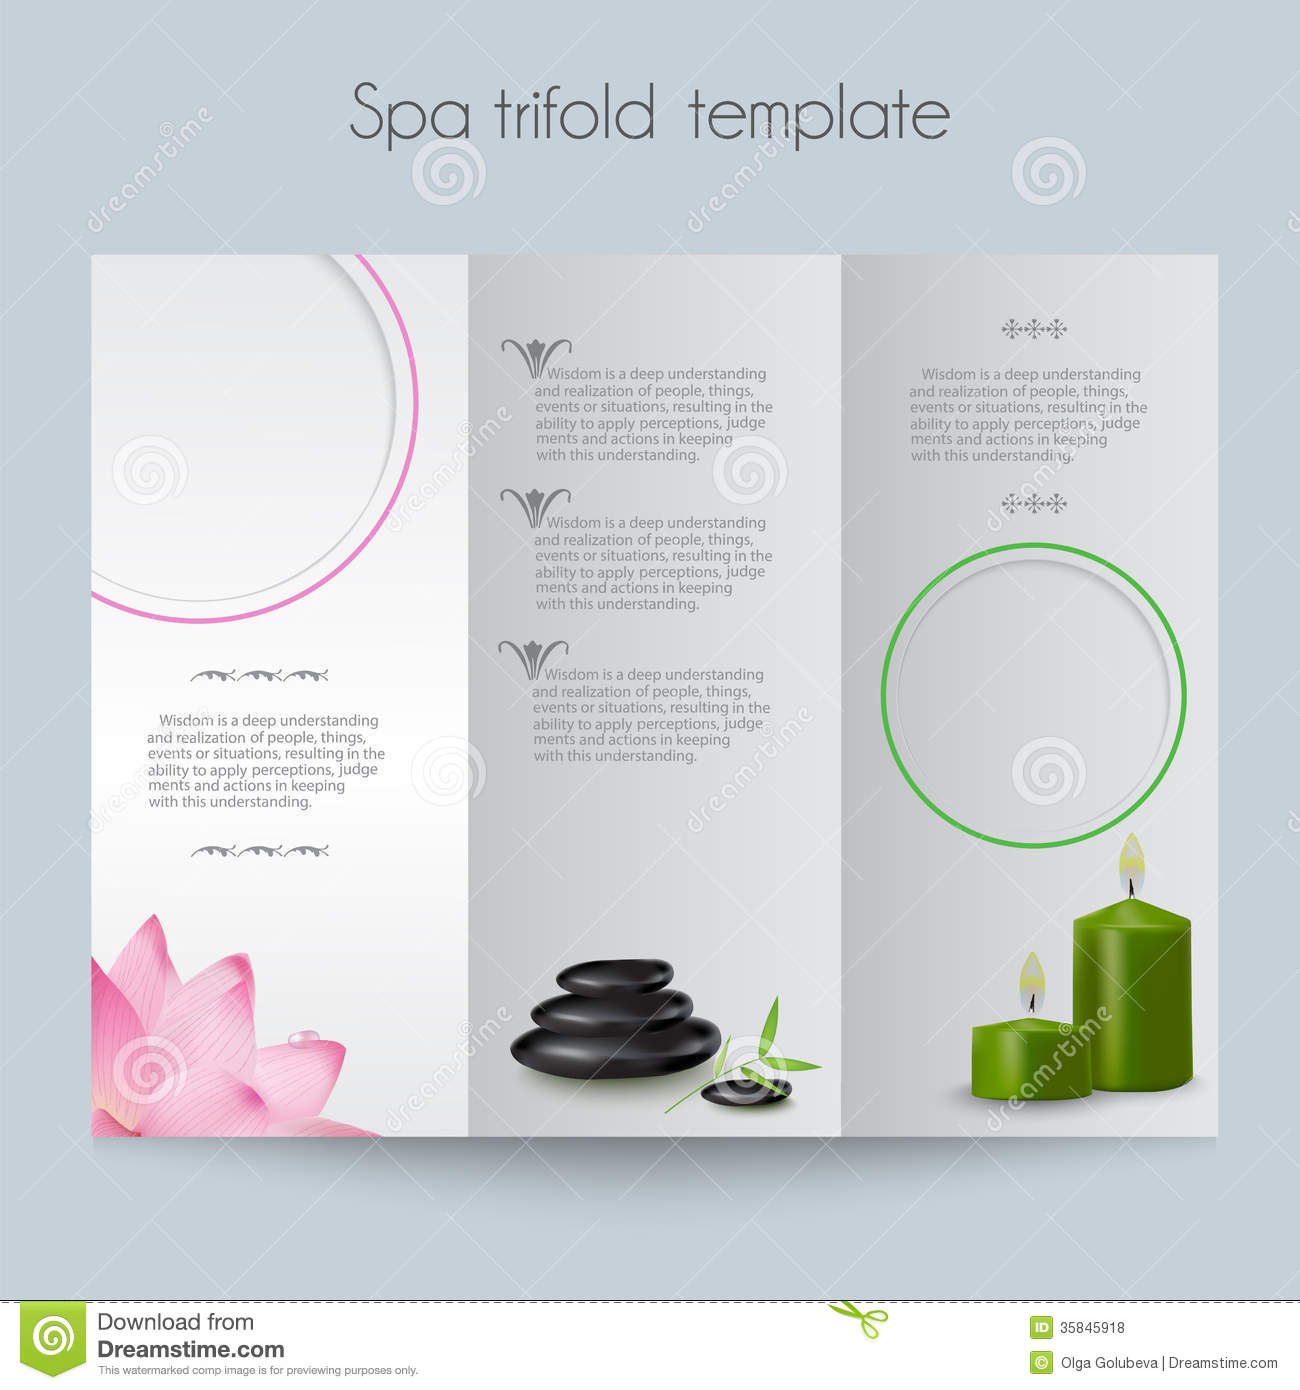 Tri fold spa brochure mock up royalty free stock photos for Brochure booklet templates